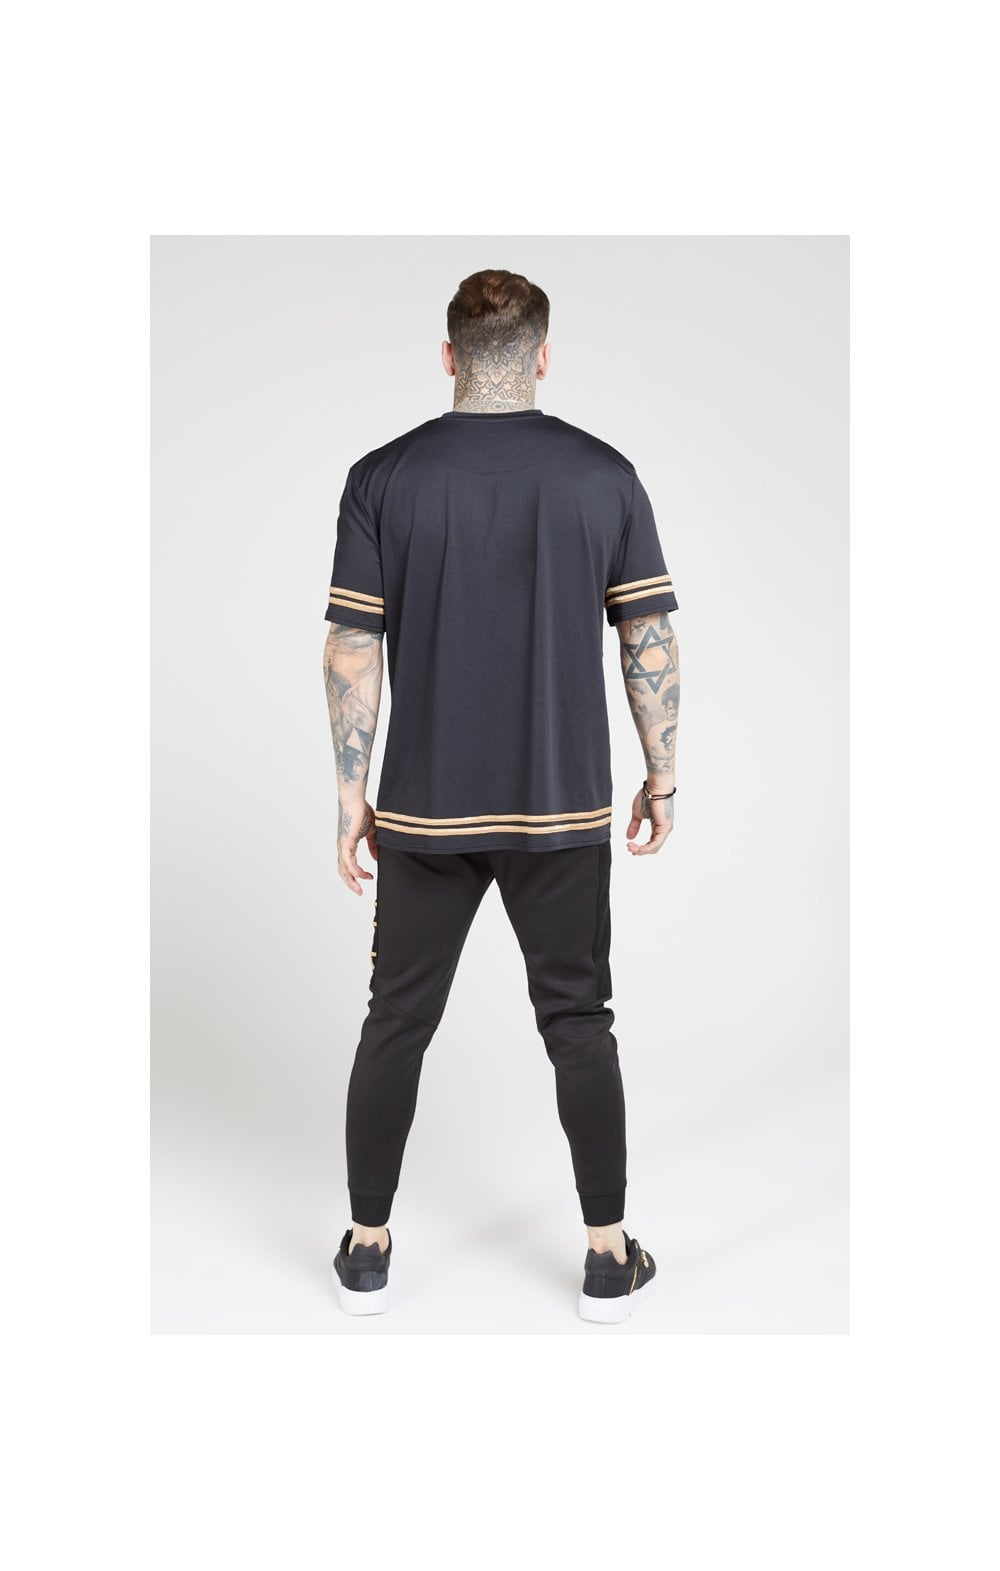 Load image into Gallery viewer, SikSilk S/S Oversize Essentials Tee – Black & Gold (5)